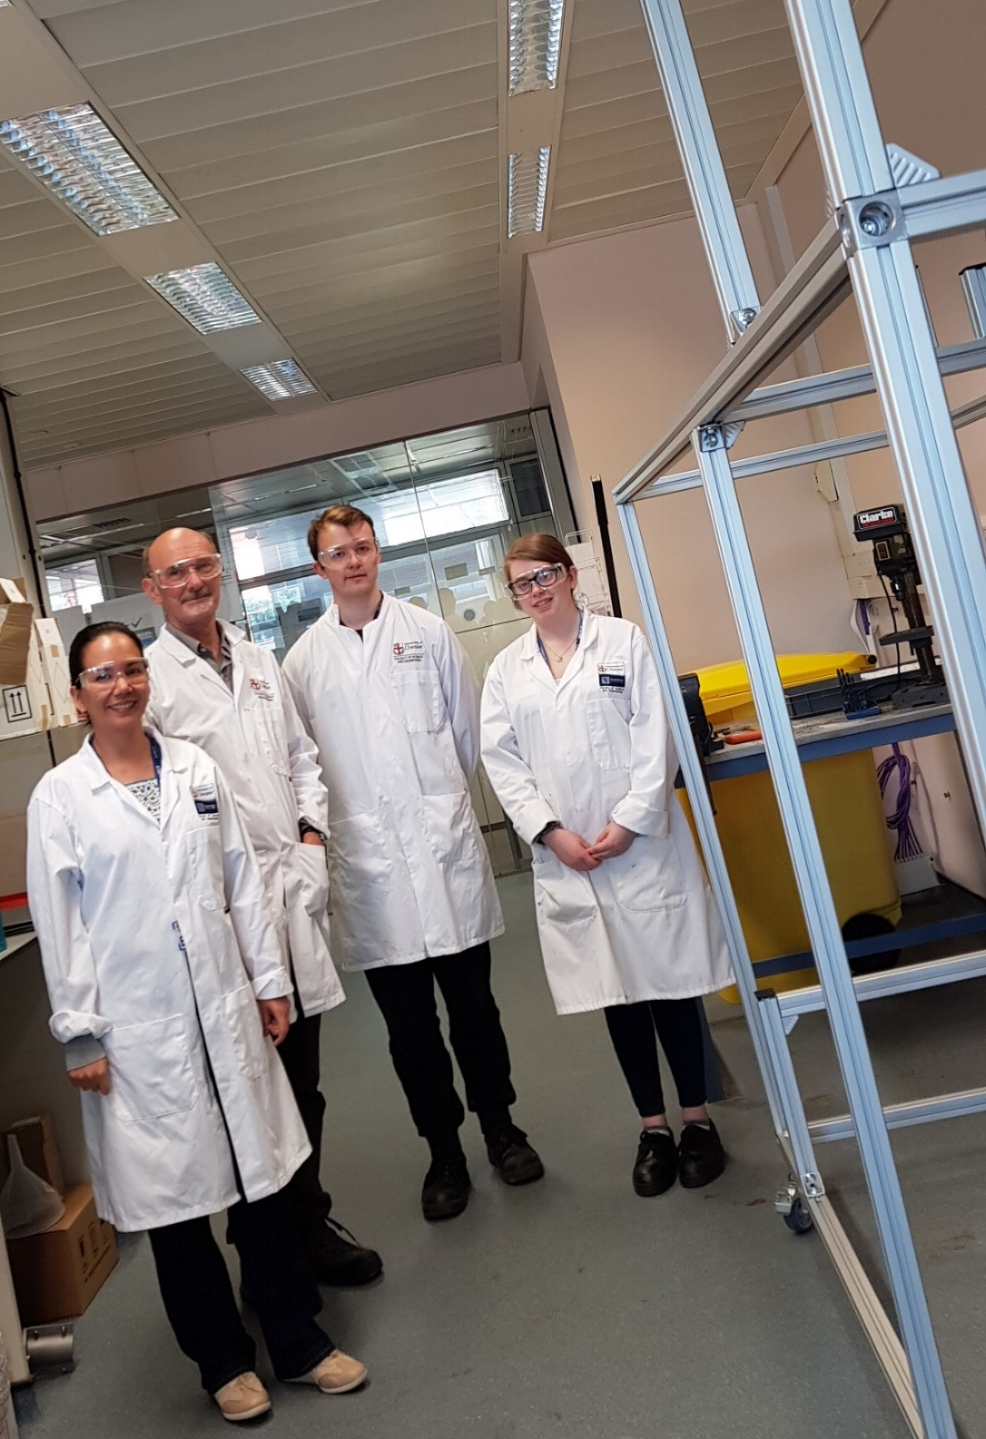 Team (left-to-right): Carolina Font-Palma (Senior Lecturer), Paul Willson (Director of PMW Technology Ltd), David Cann (PhD candidate), Katie Russell (Placement student). Photo by Newsun Jose